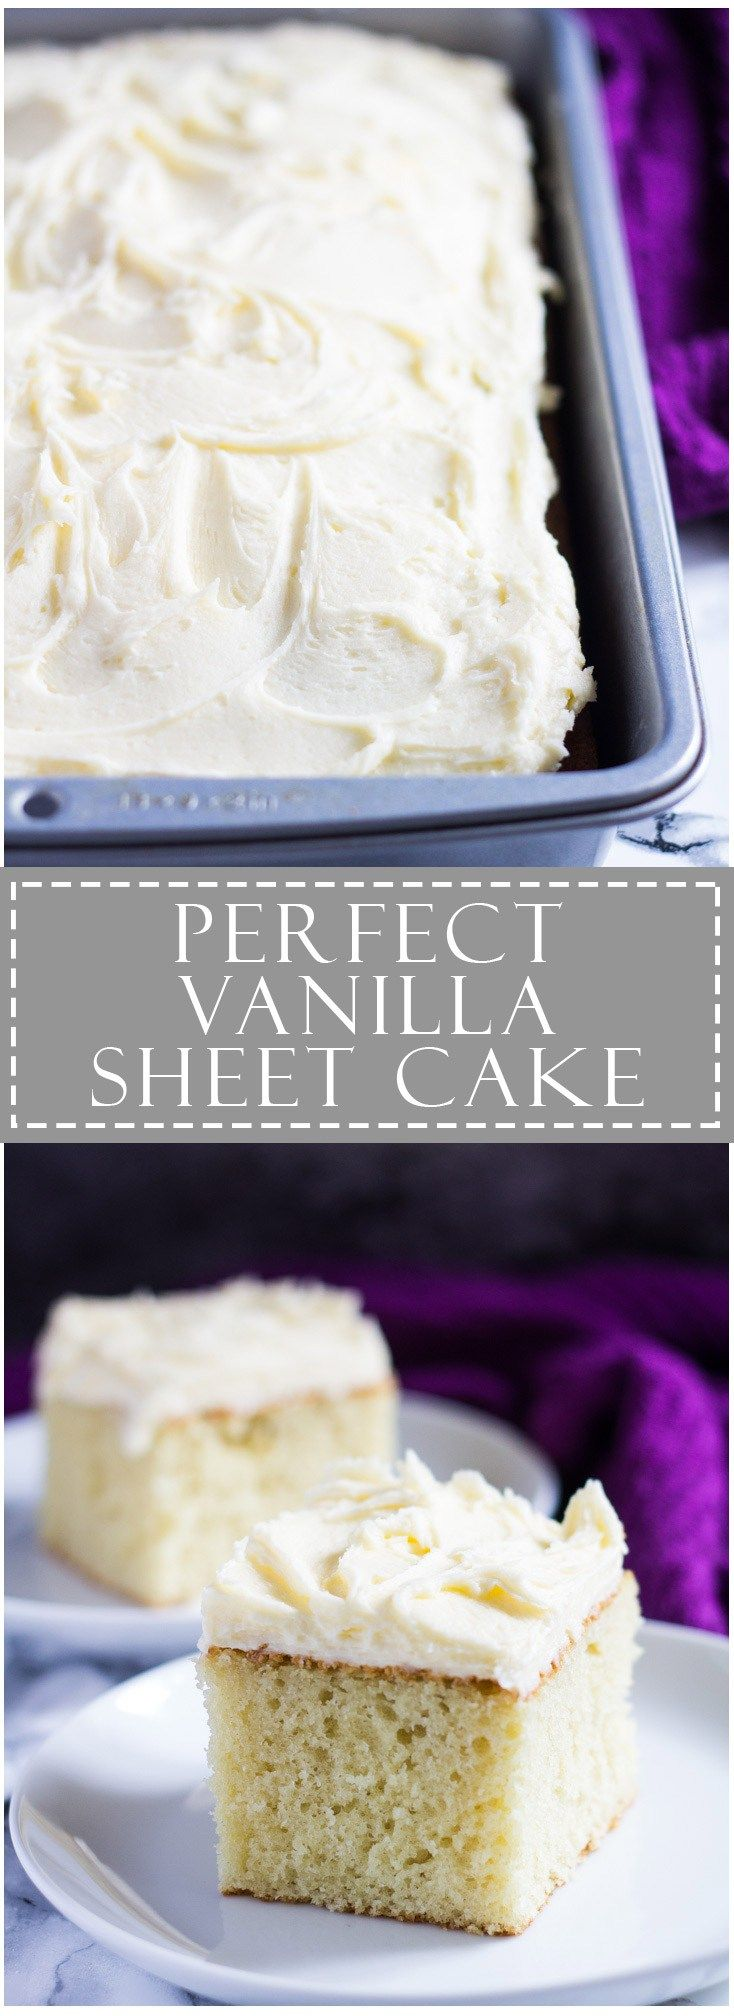 Perfect Vanilla Sheet Cake | Marsha's Baking Addiction